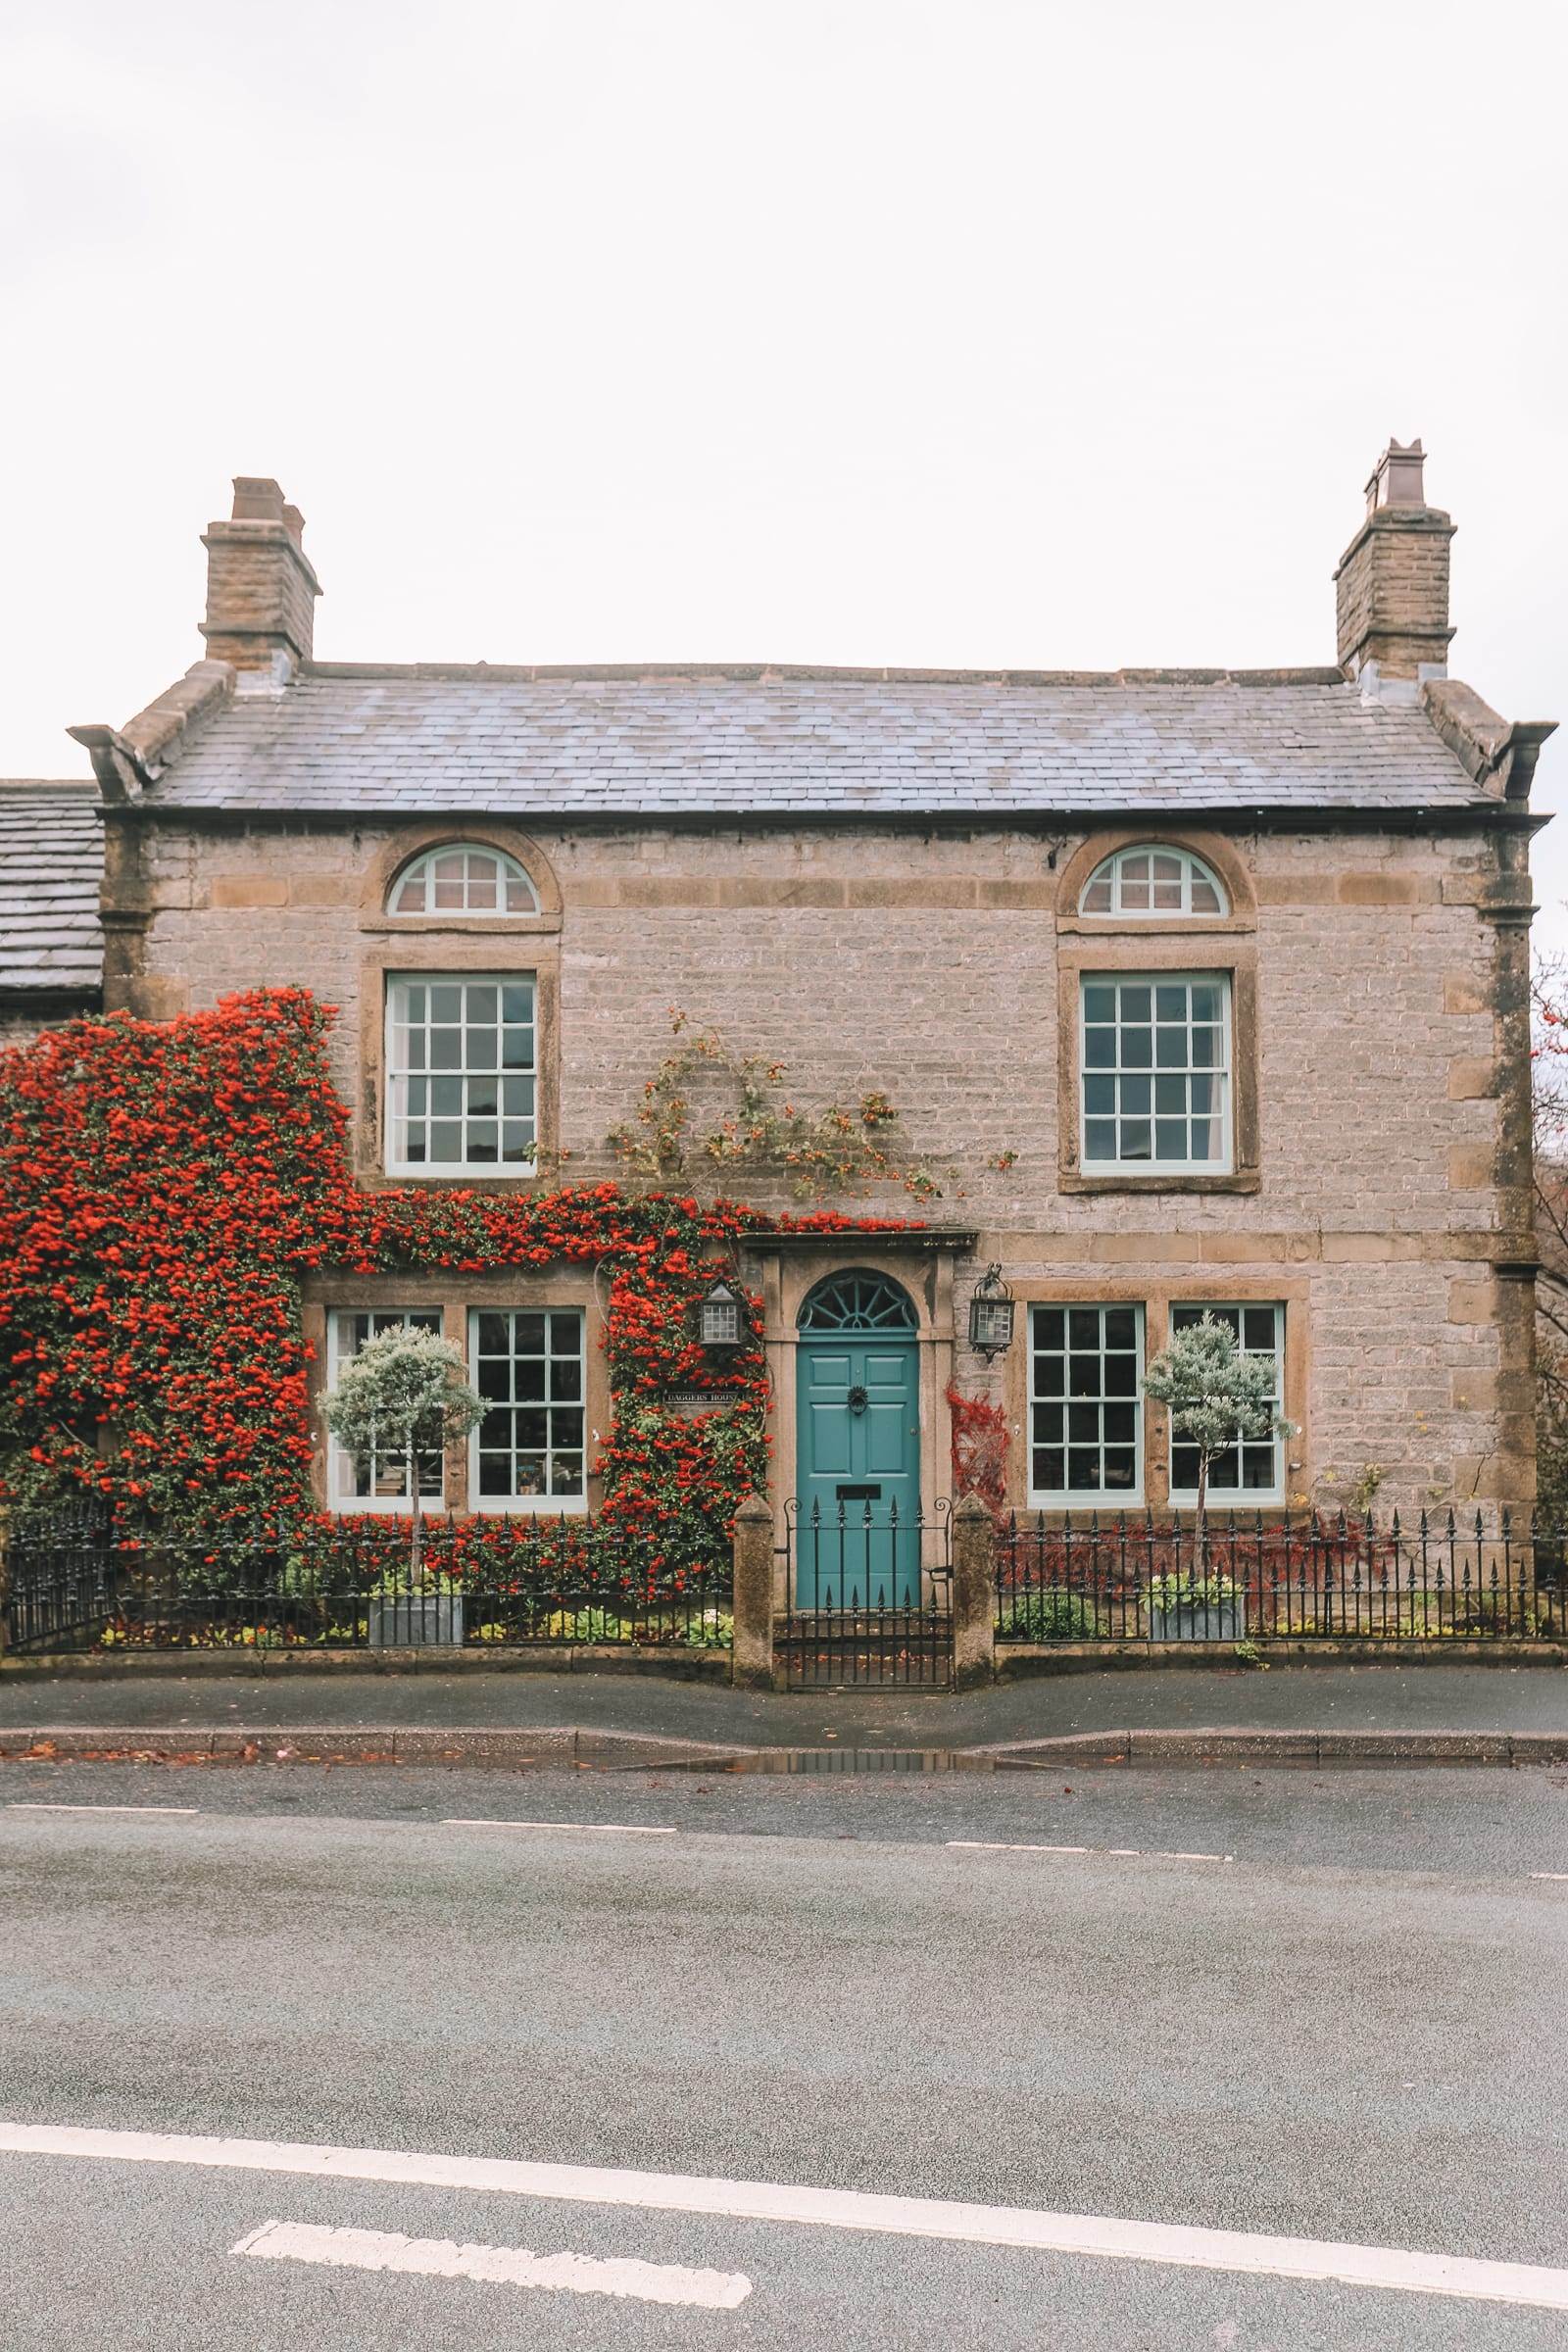 Finding Robin Hood's Bow And Safari Lodging In The Peak District, England (31)